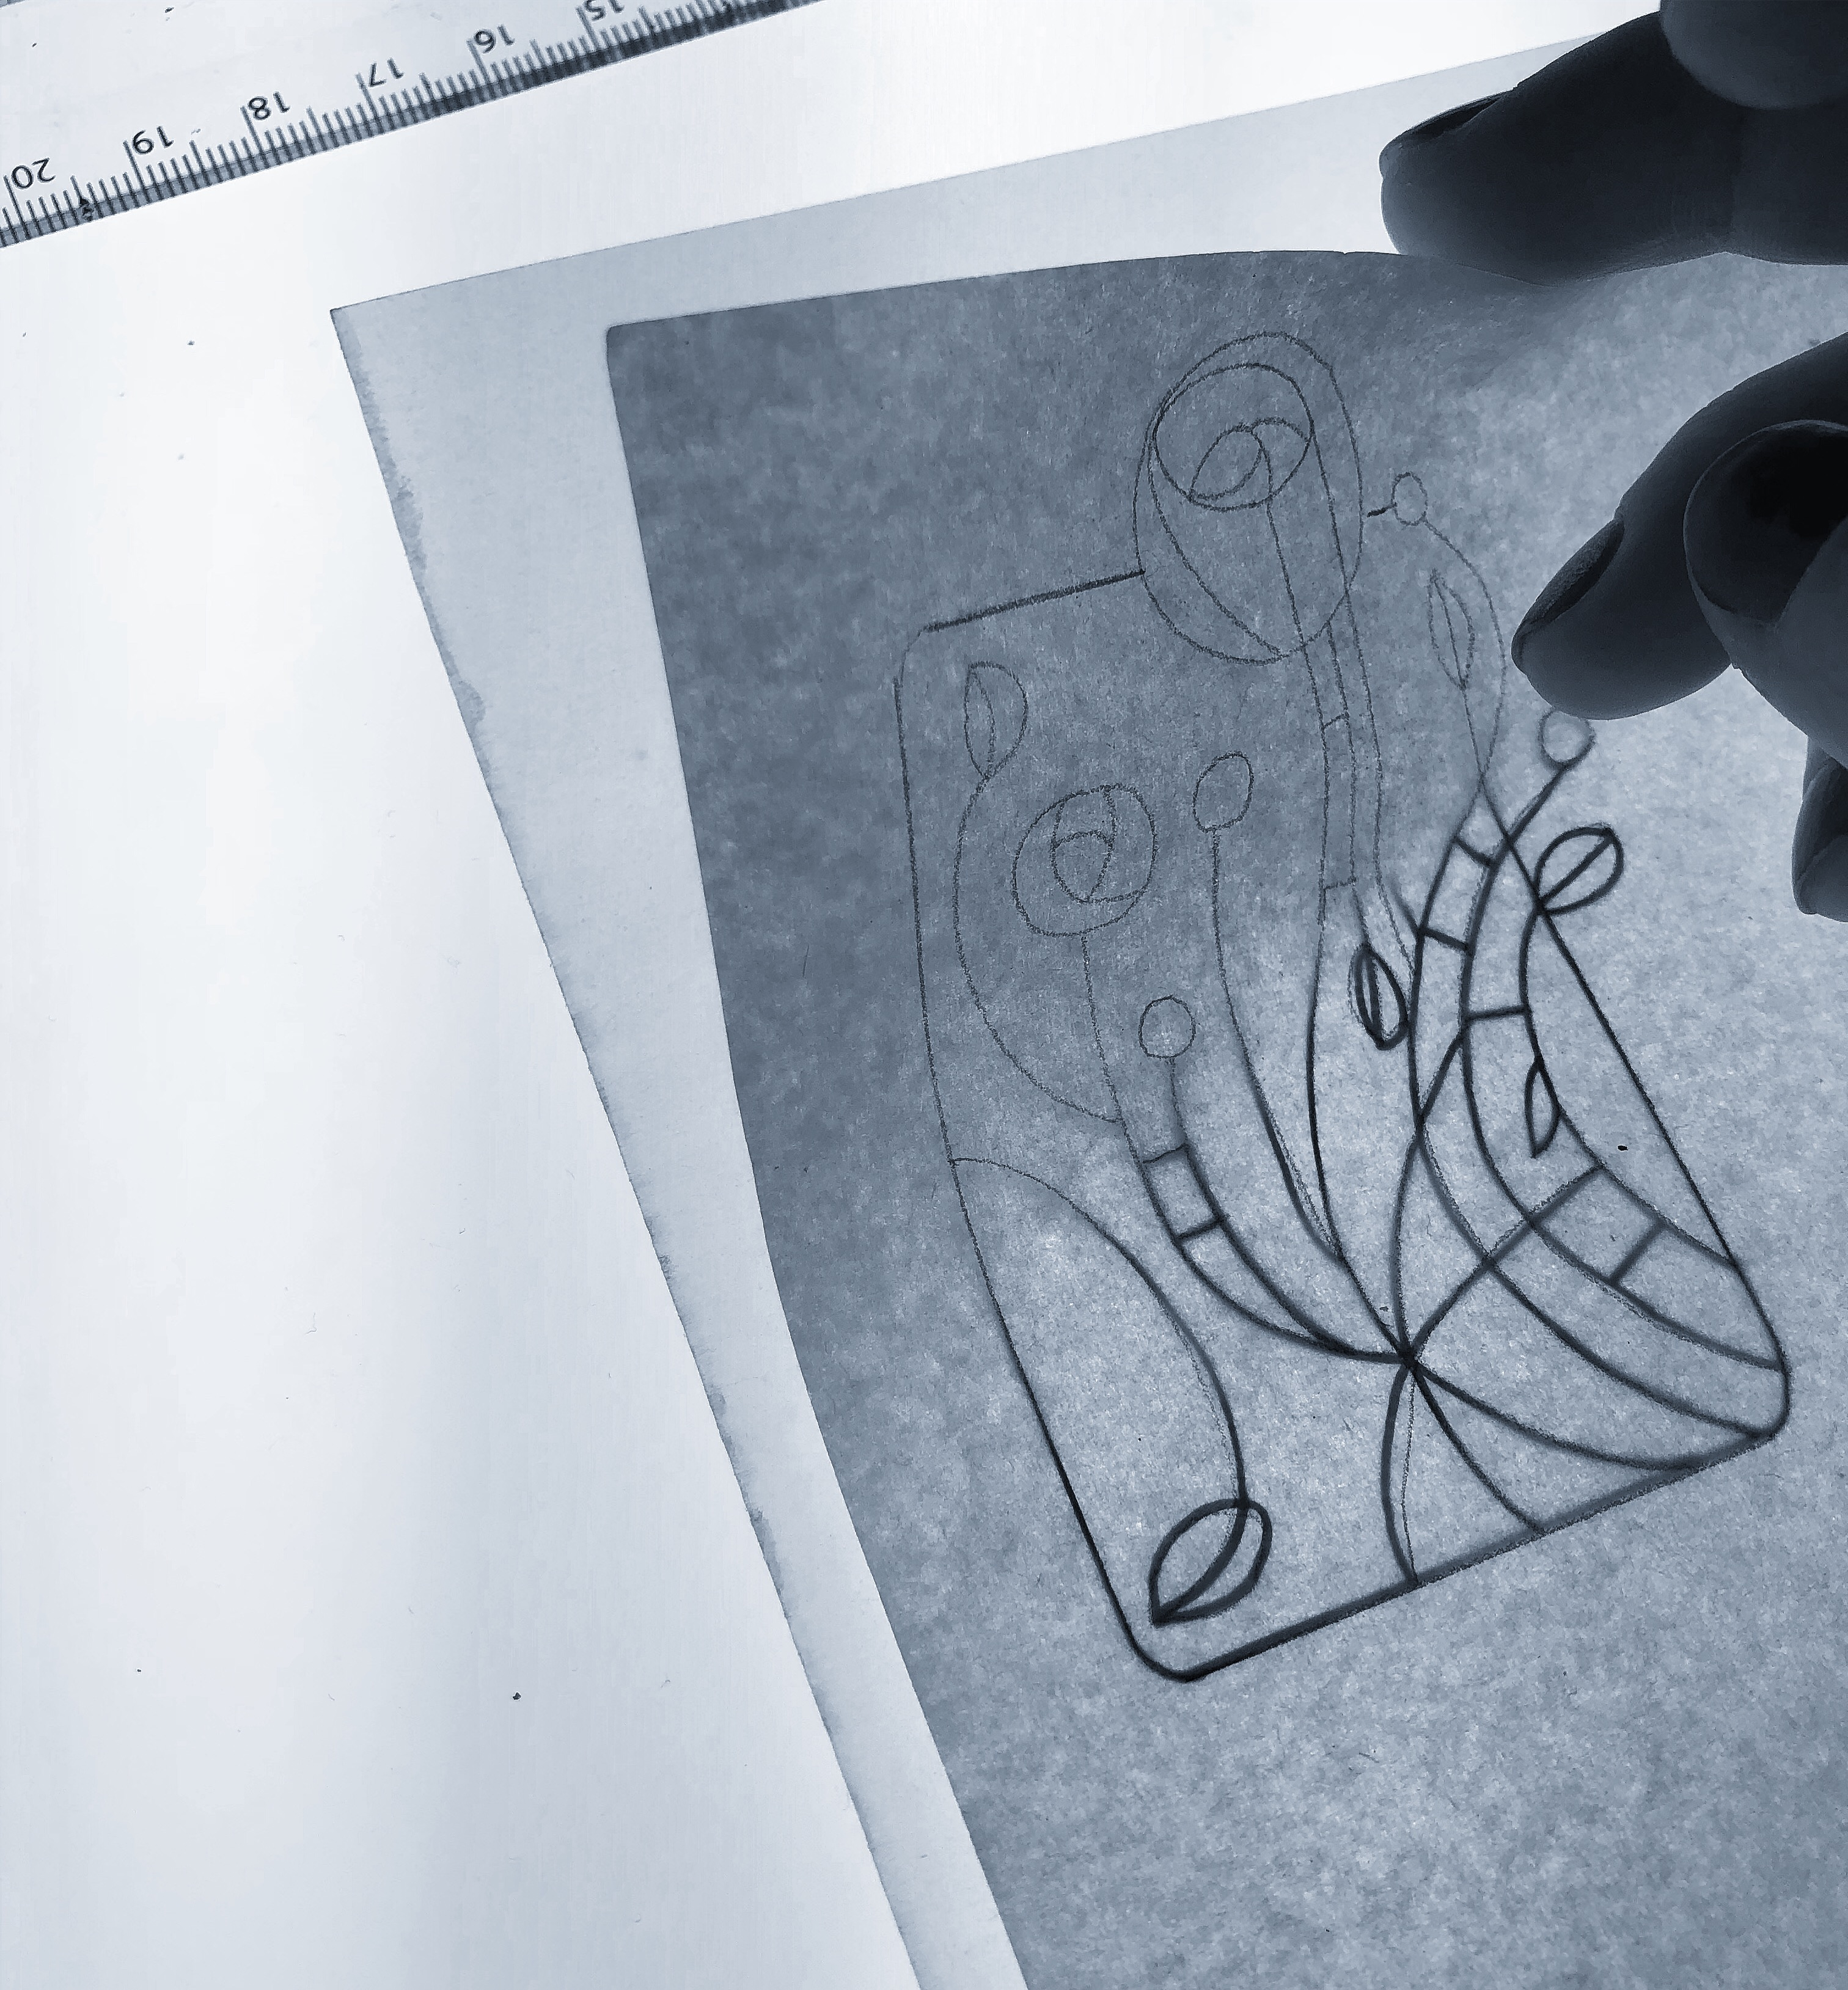 mackintosh rose sketch Your Place To Space tattoo work by Alexandra Godwin